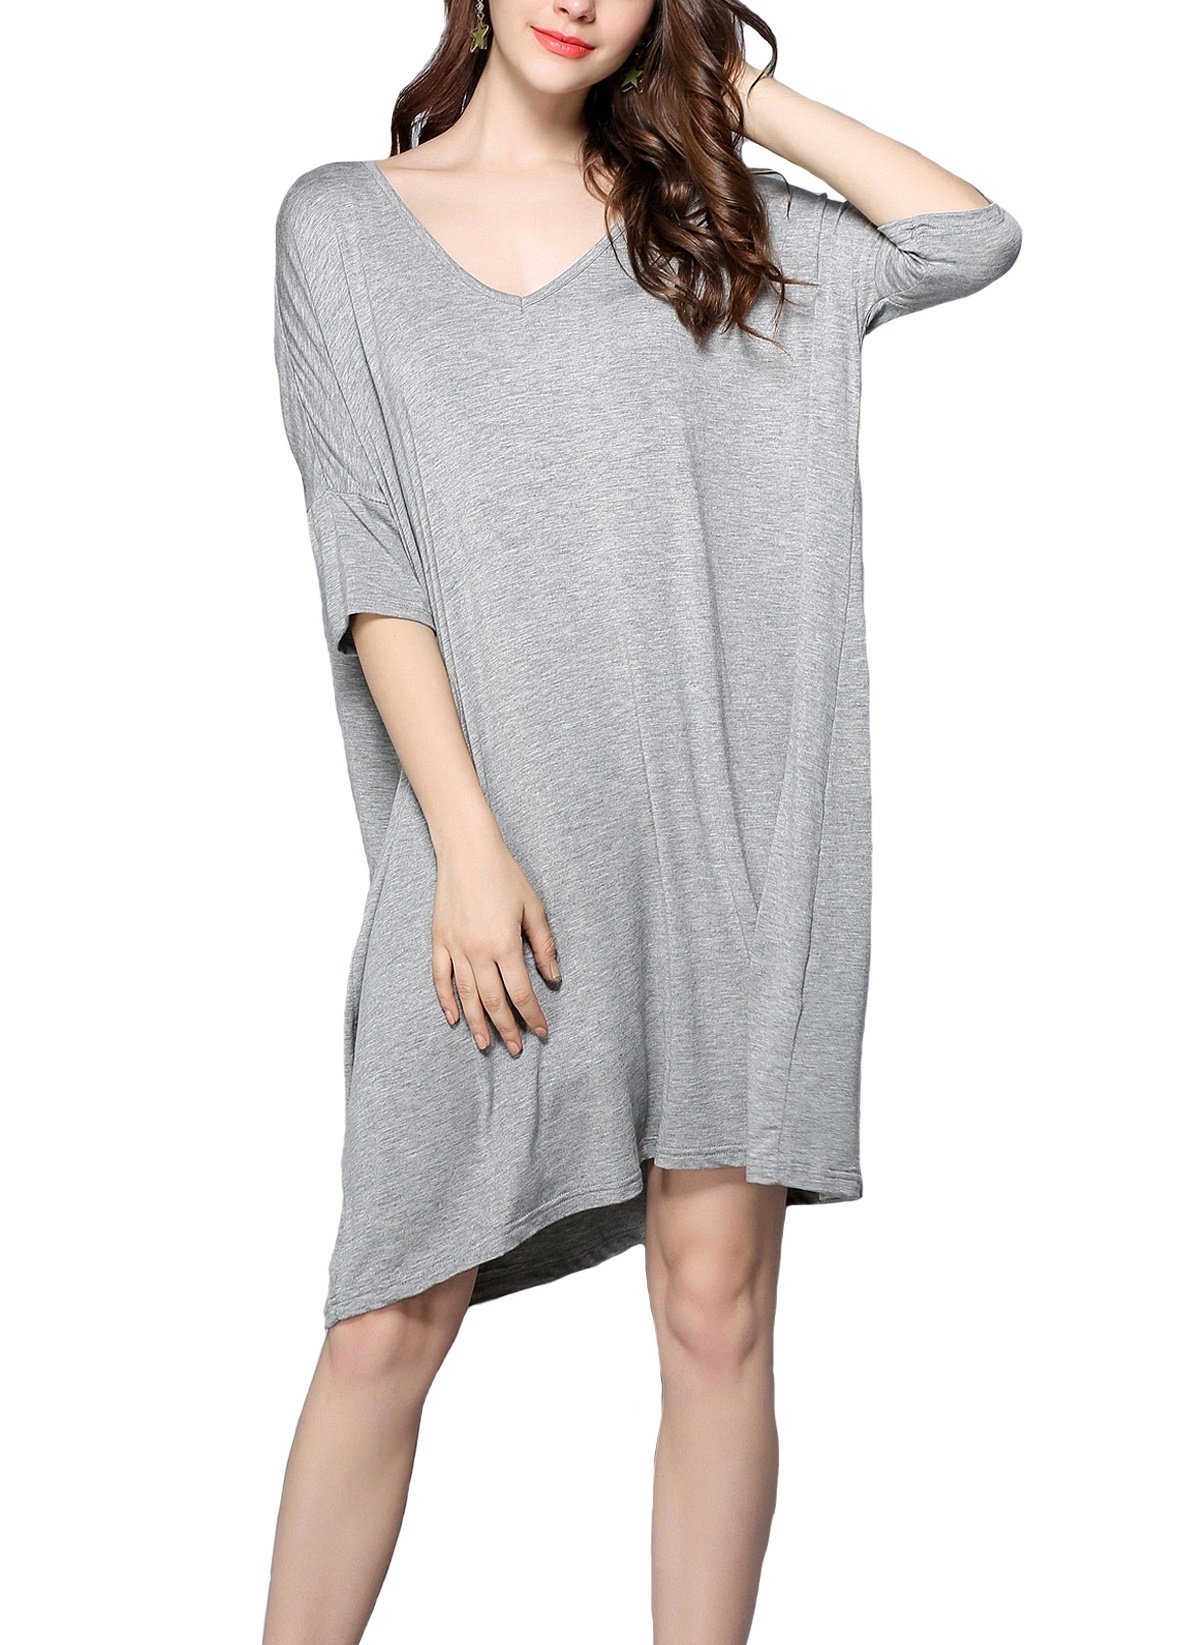 Lealac Women's Cotton V-Neck Short Sleeve T-Shirt Dress Plus Size Loose Breathable Sleepwear Nightwear 5325 Gray S